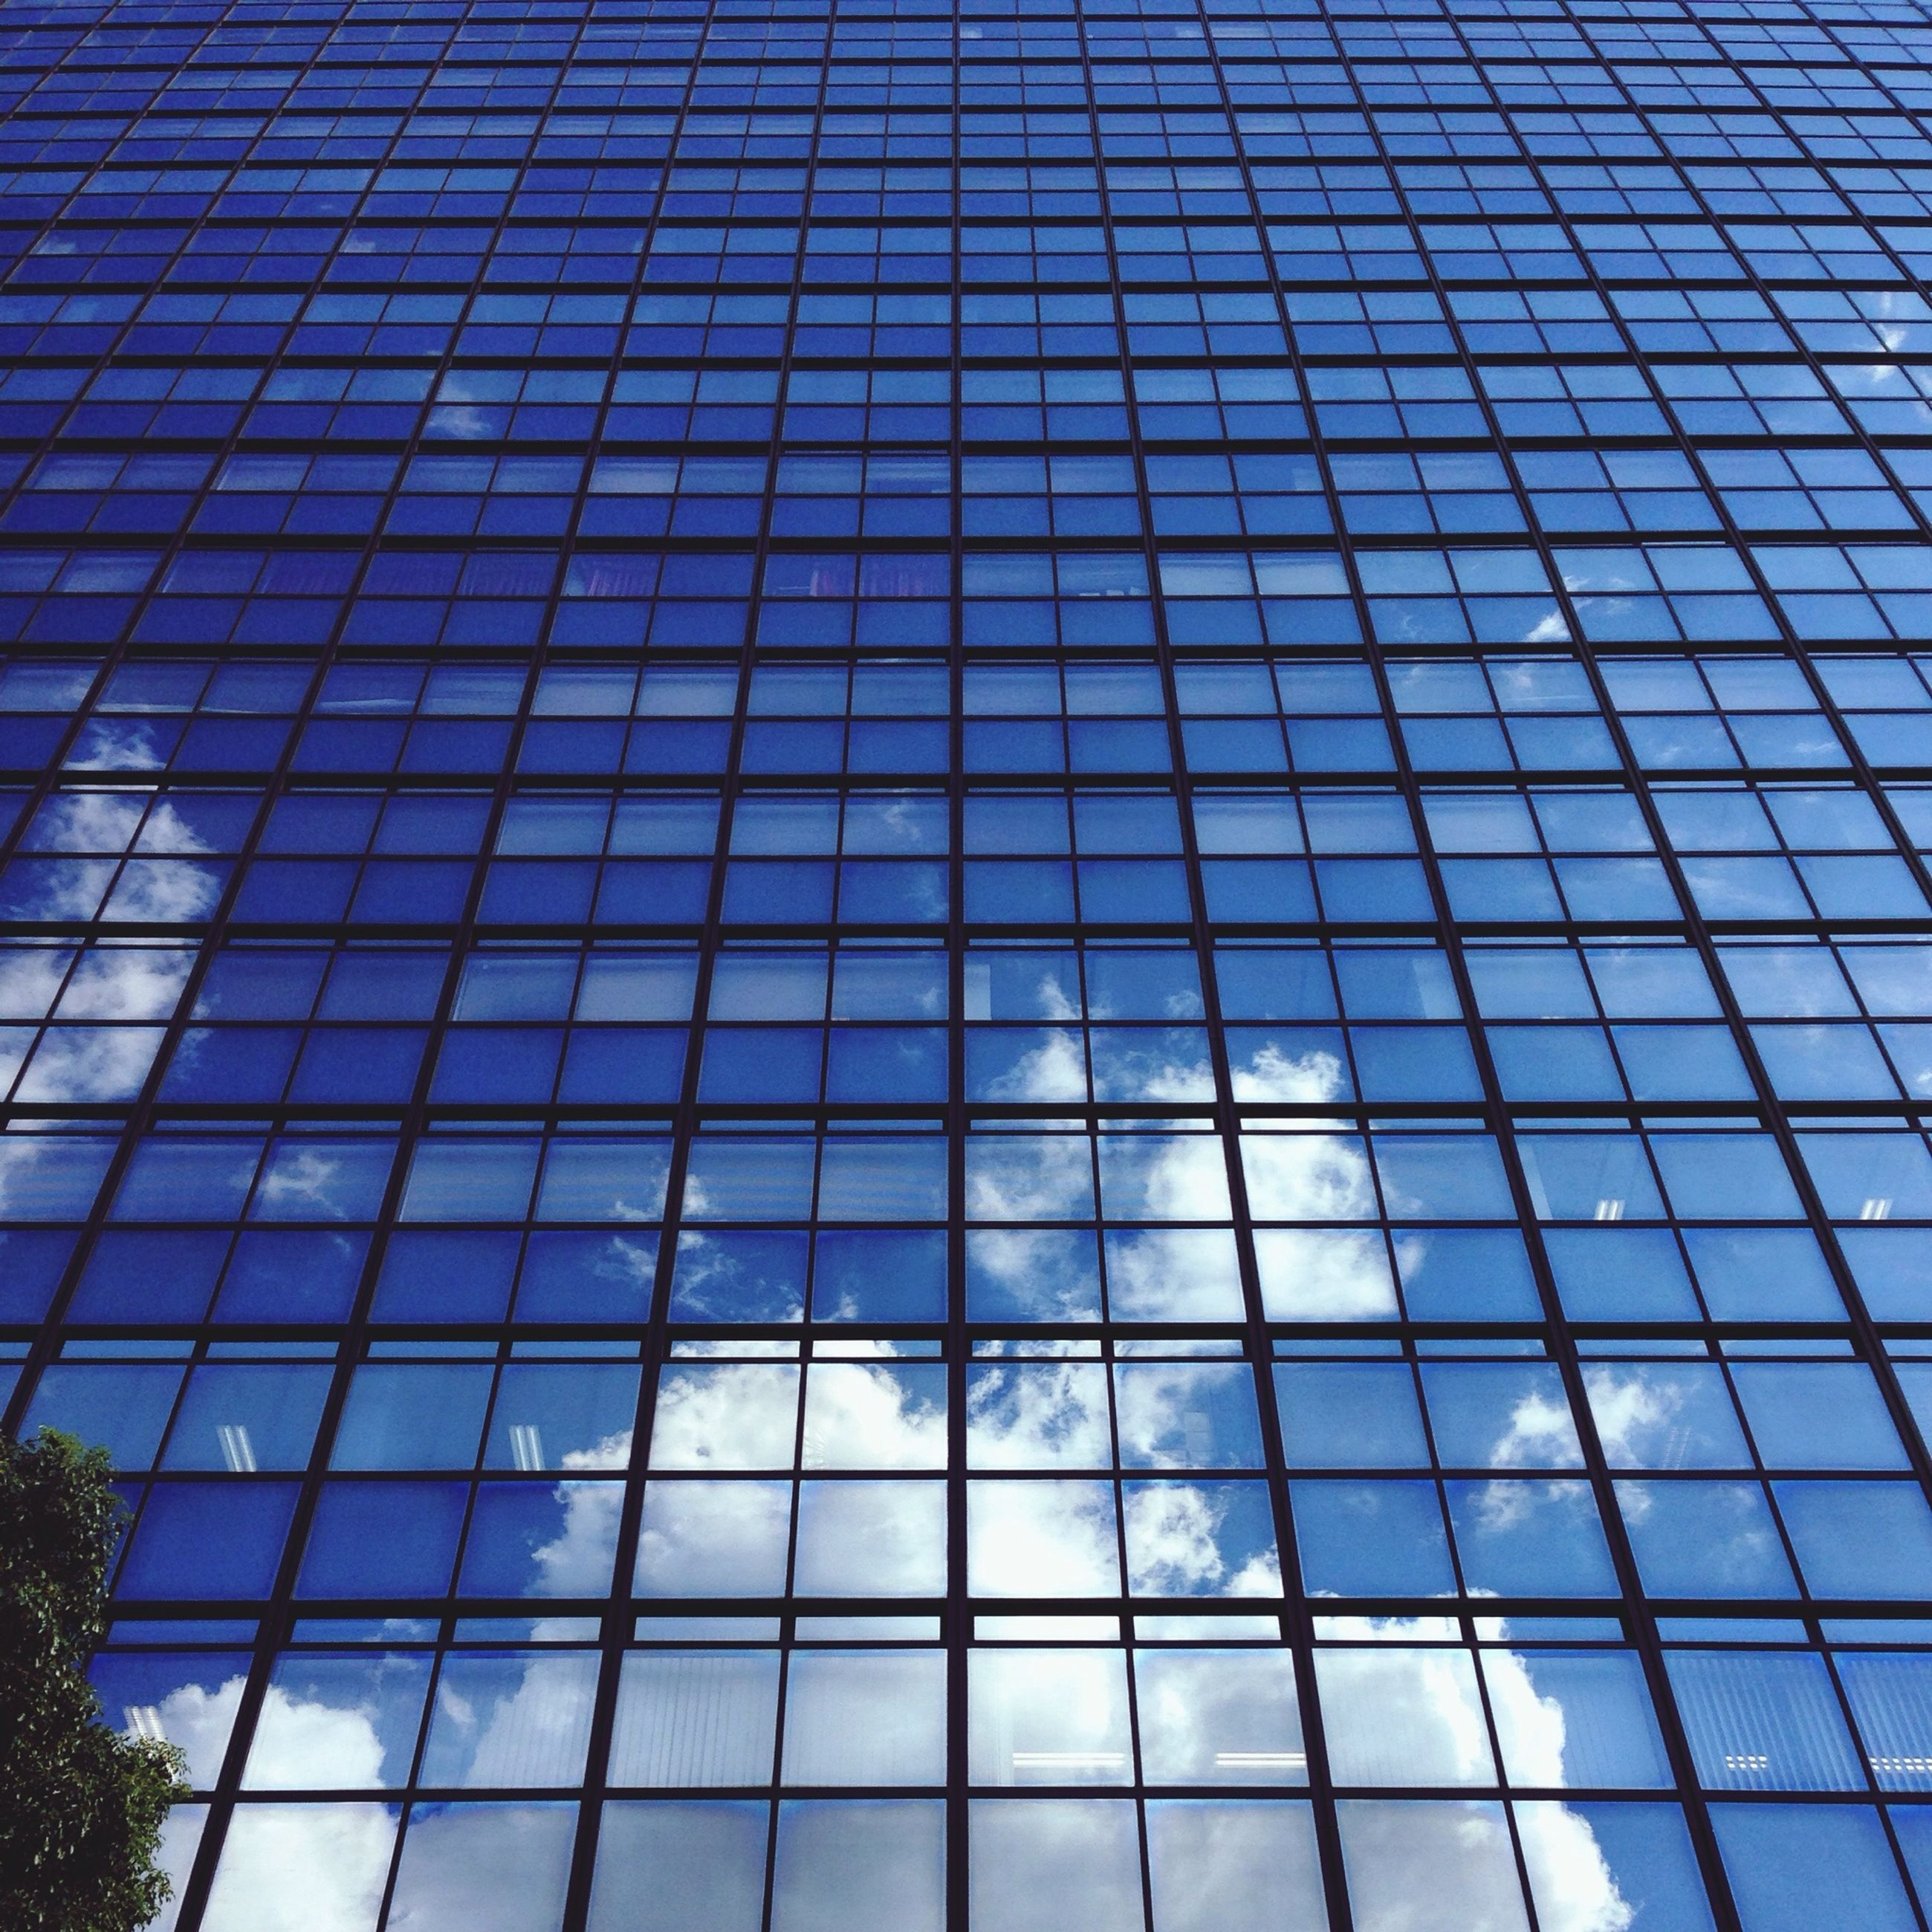 architecture, low angle view, built structure, building exterior, modern, glass - material, office building, reflection, city, skyscraper, tall - high, blue, tower, building, sky, pattern, day, architectural feature, window, no people